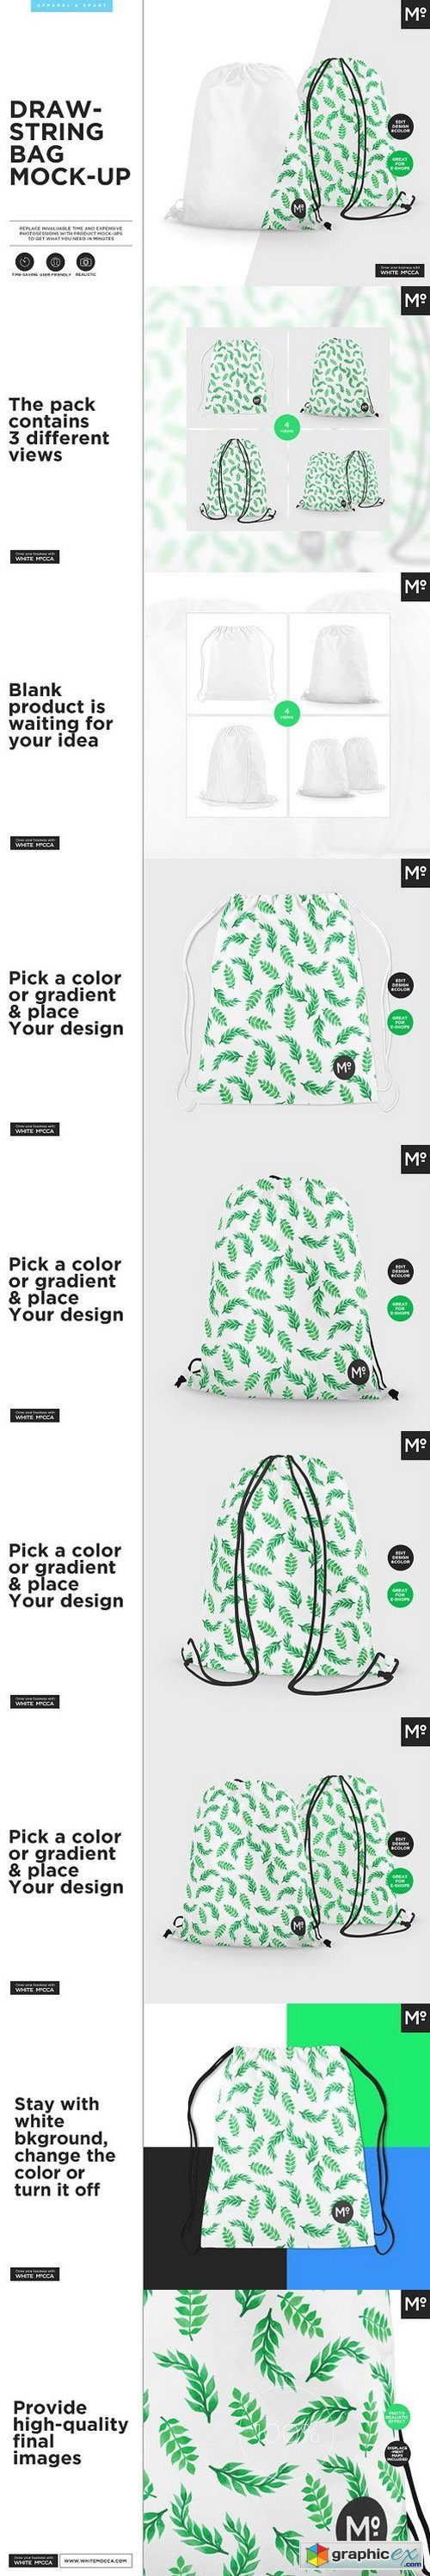 Drawstring Bag Mock-up